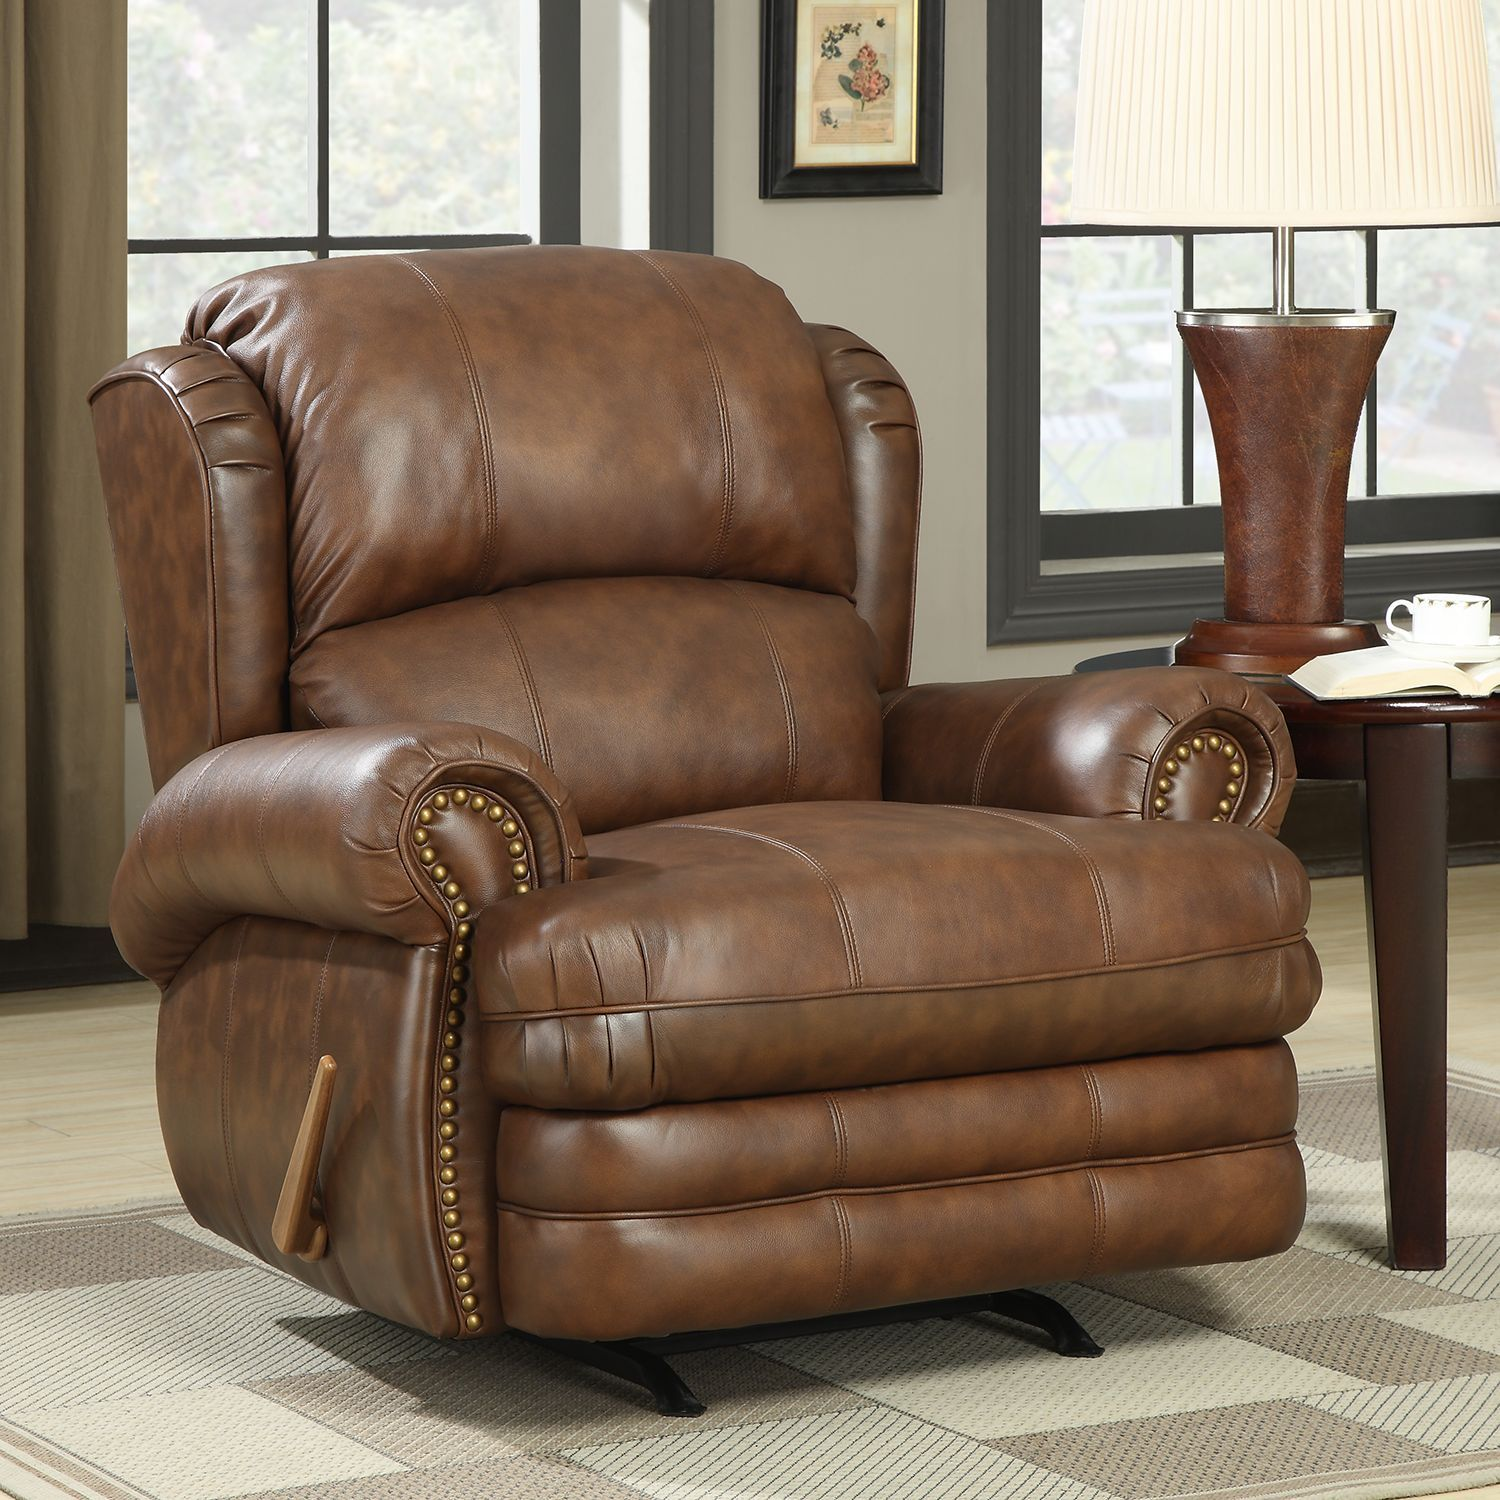 Rocking Leather Recliner